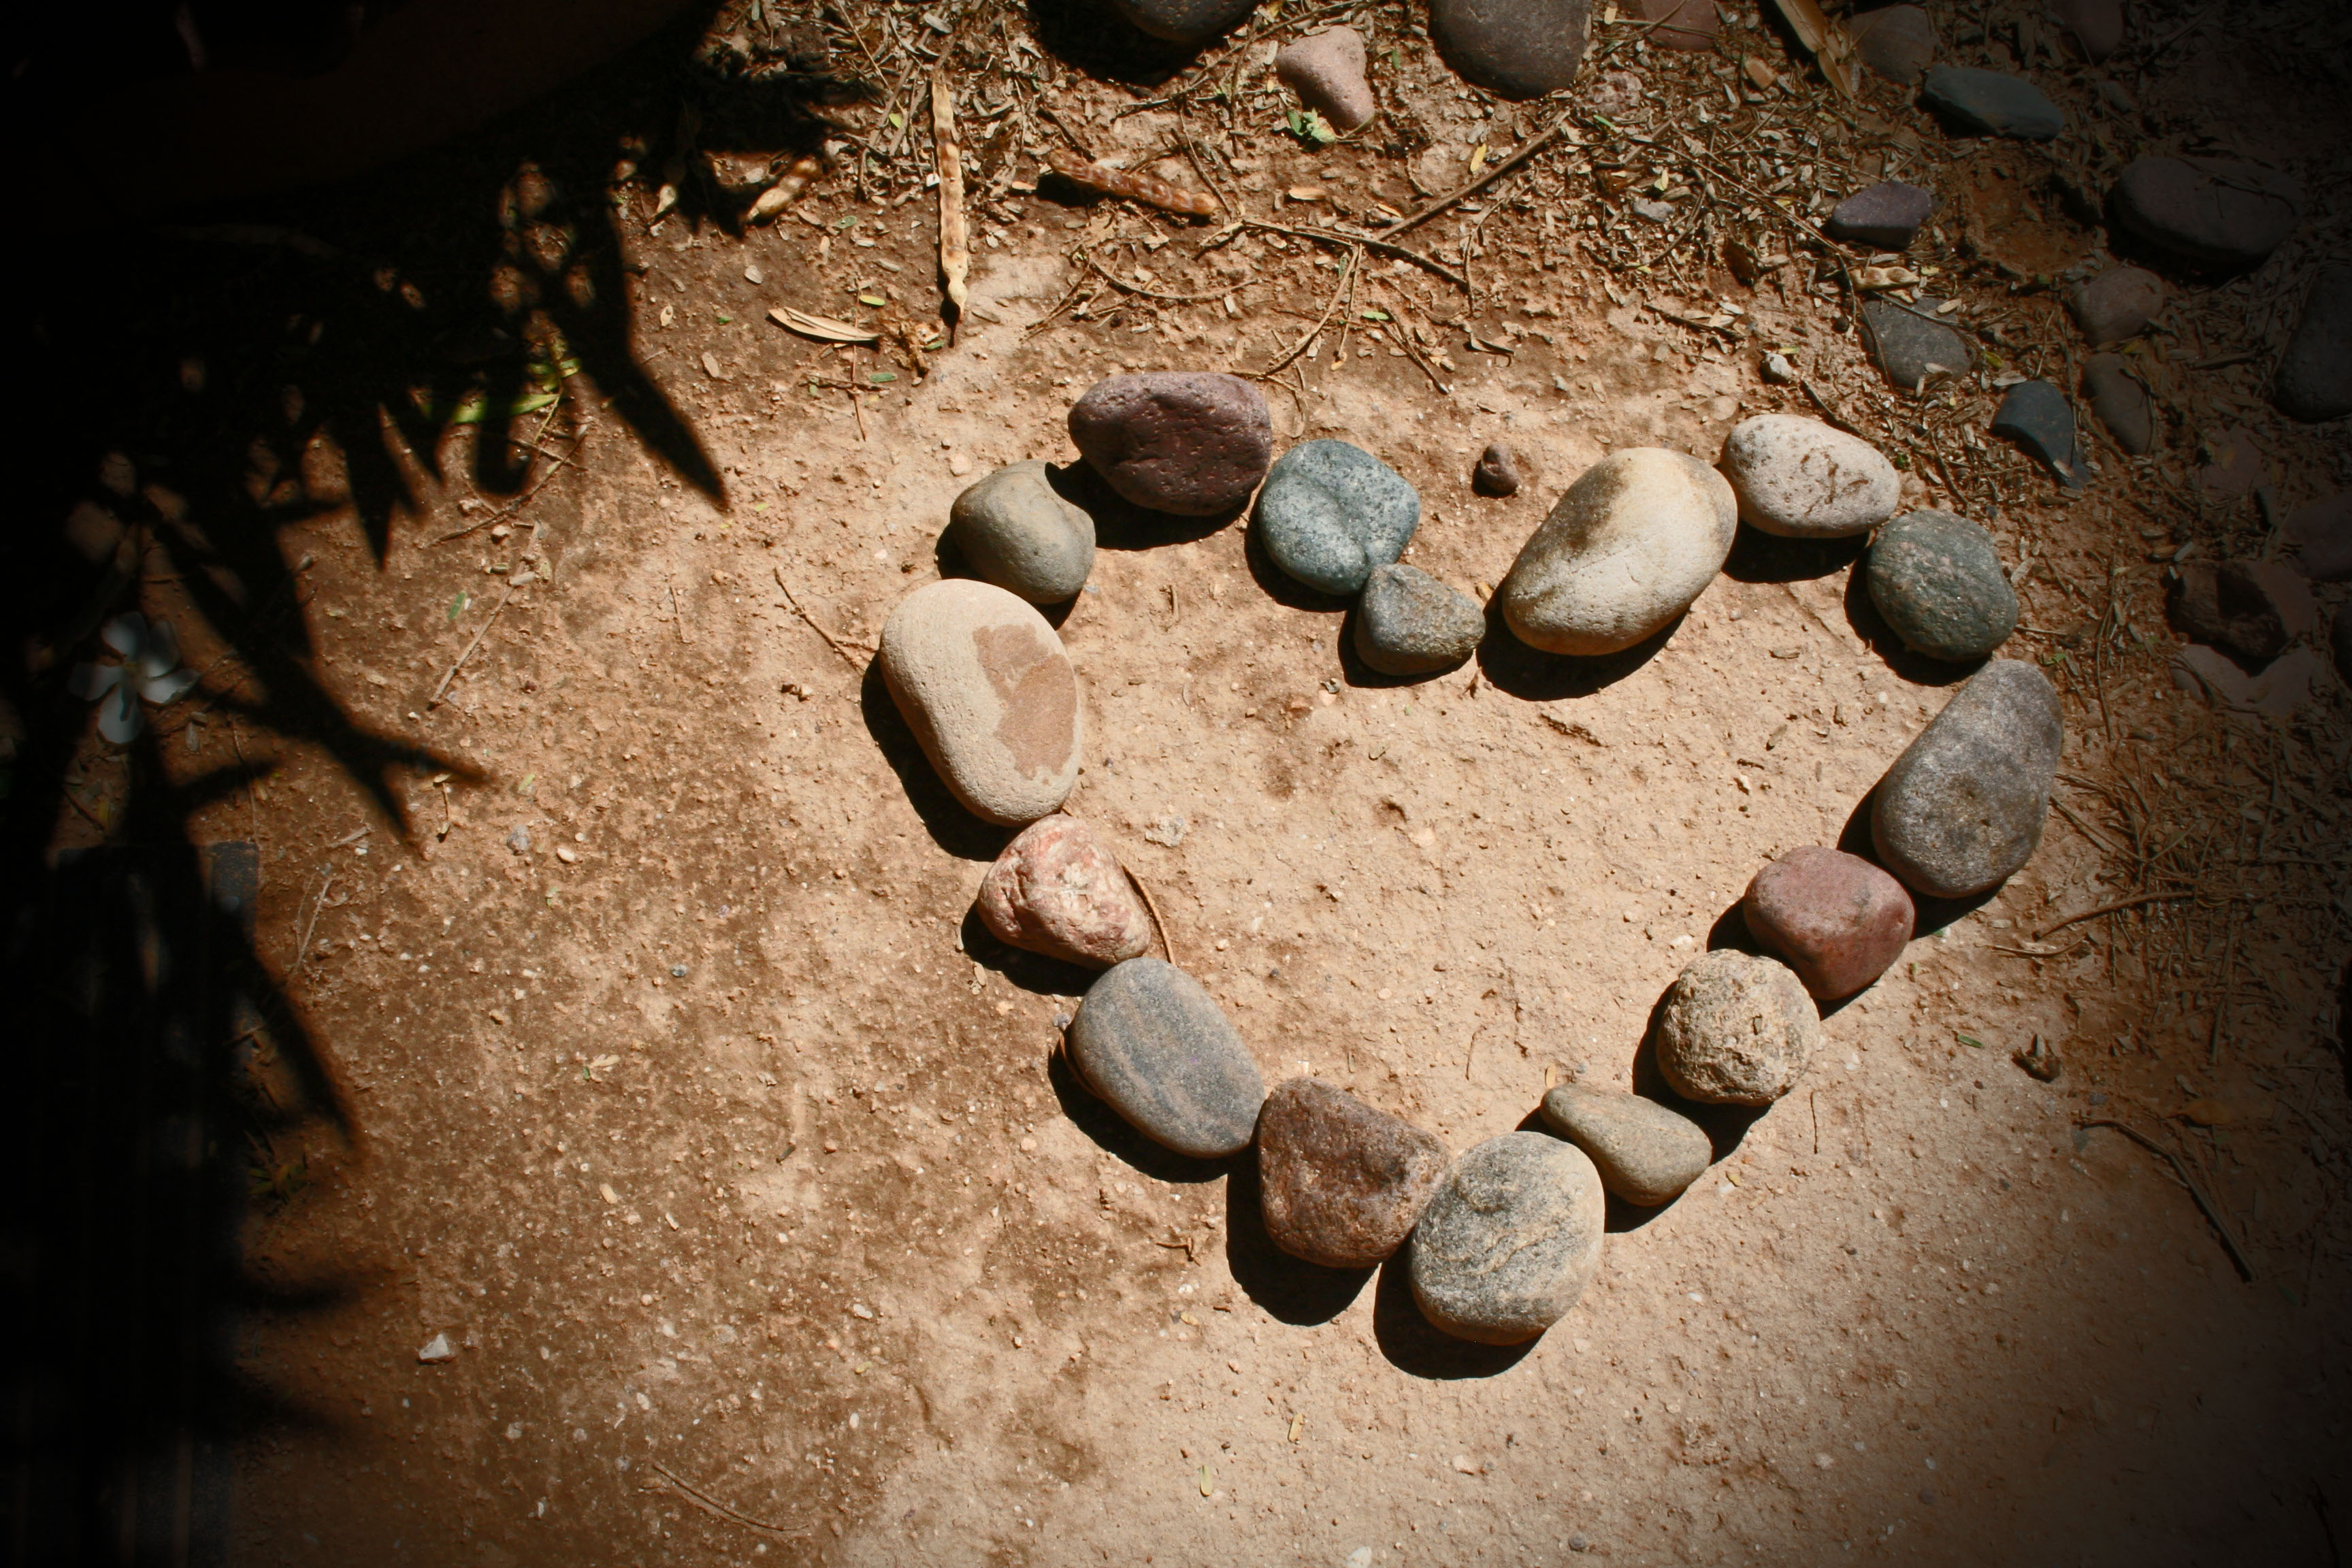 Rocks in the shape of a heart on the ground.